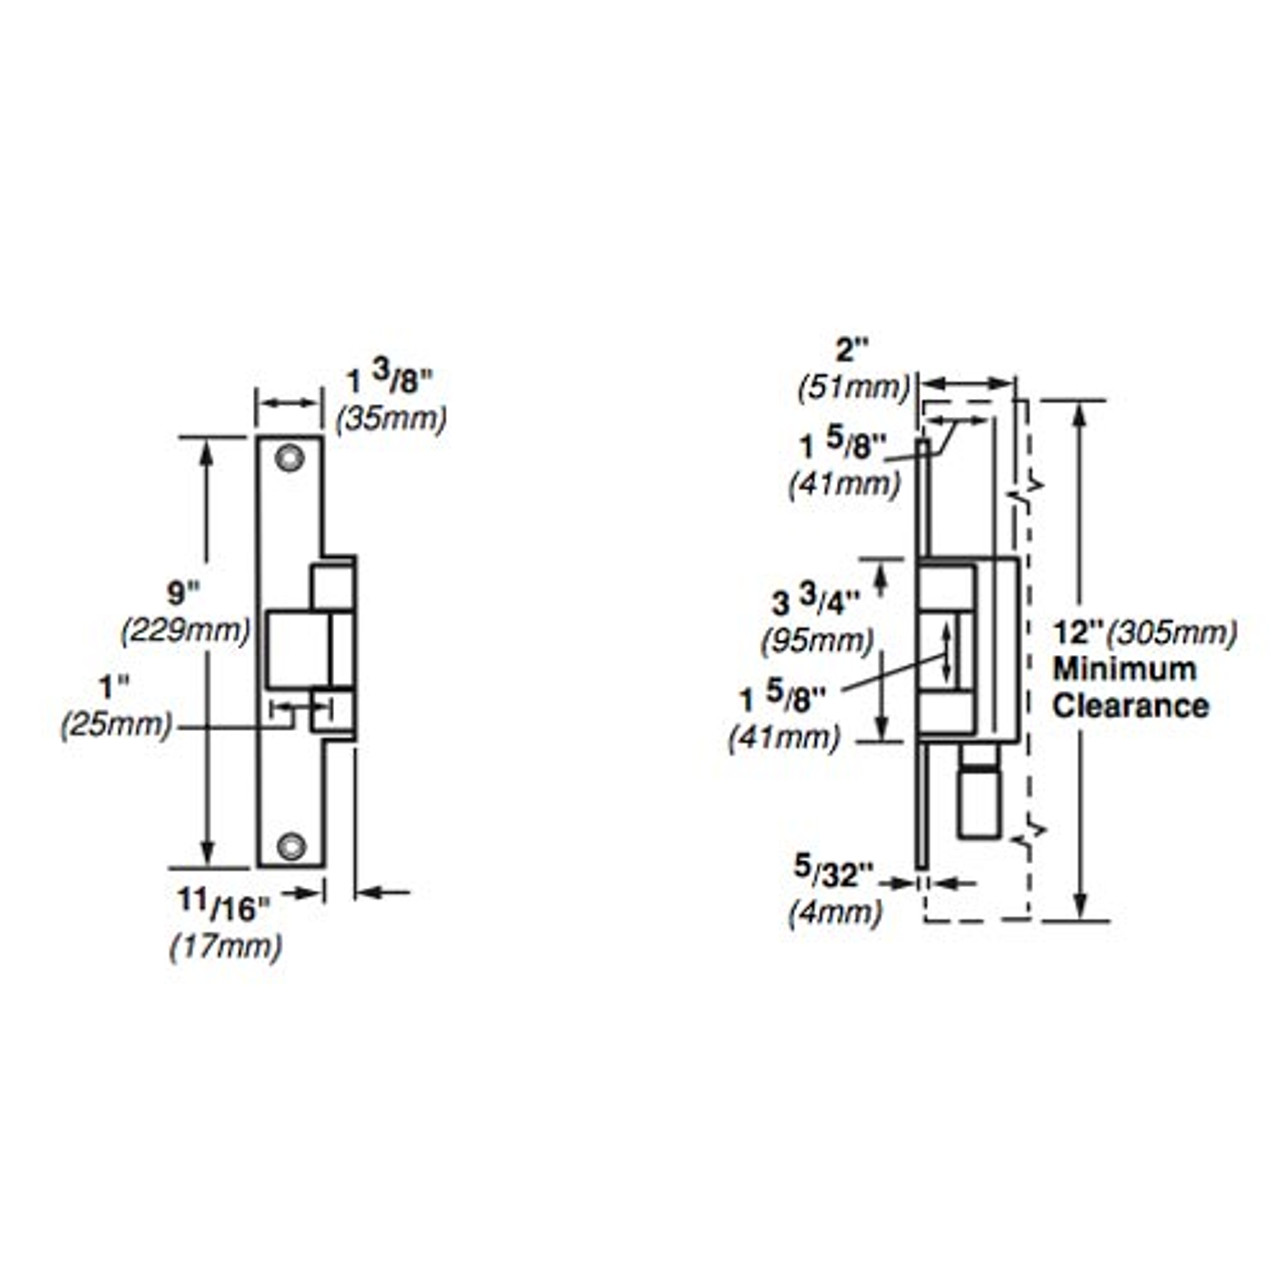 6214-FS-24VDC-US32D Von Duprin Electric Strike for Mortise or Cylindrical Locksets in Satin Stainless Steel Finish